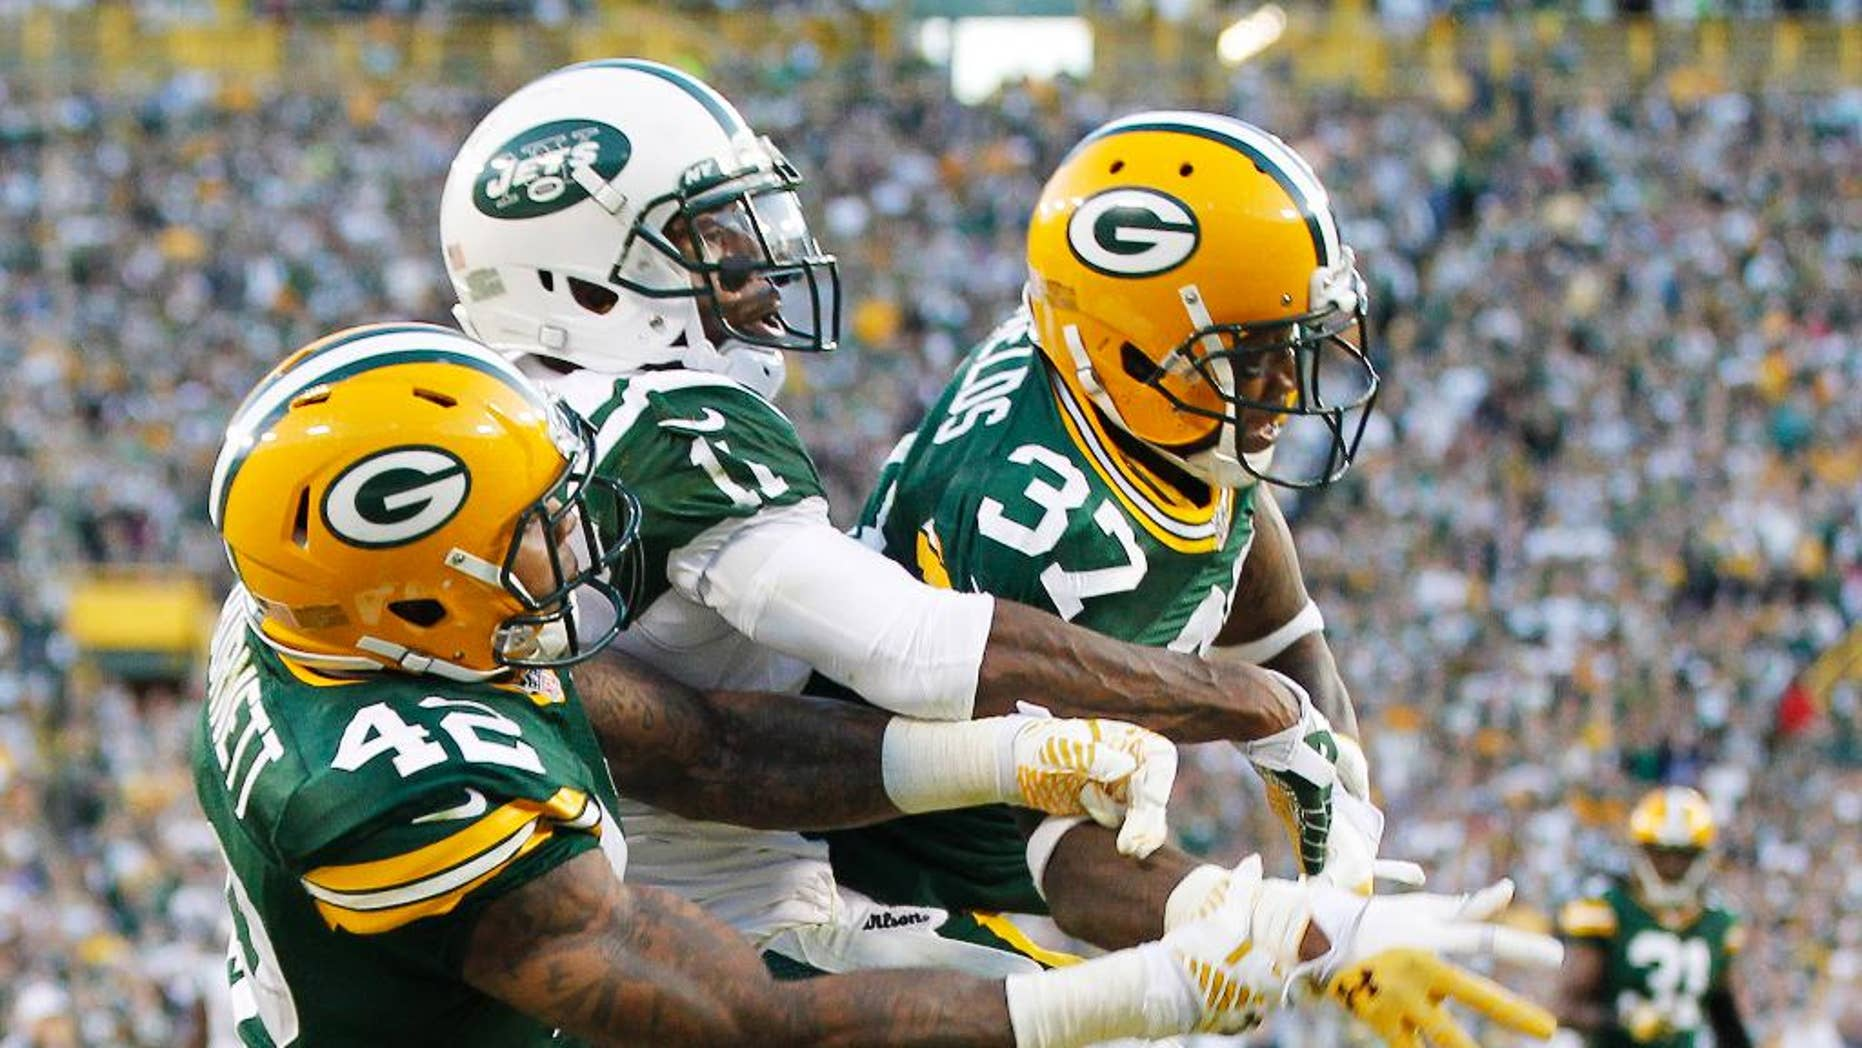 Green Bay Packers' Sam Shields (37) and Morgan Burnett break up a pass intended for New York Jets' Jeremy Kerley during the second half of an NFL football game Sunday, Sept. 14, 2014, in Green Bay, Wis. (AP Photo/Mike Roemer)